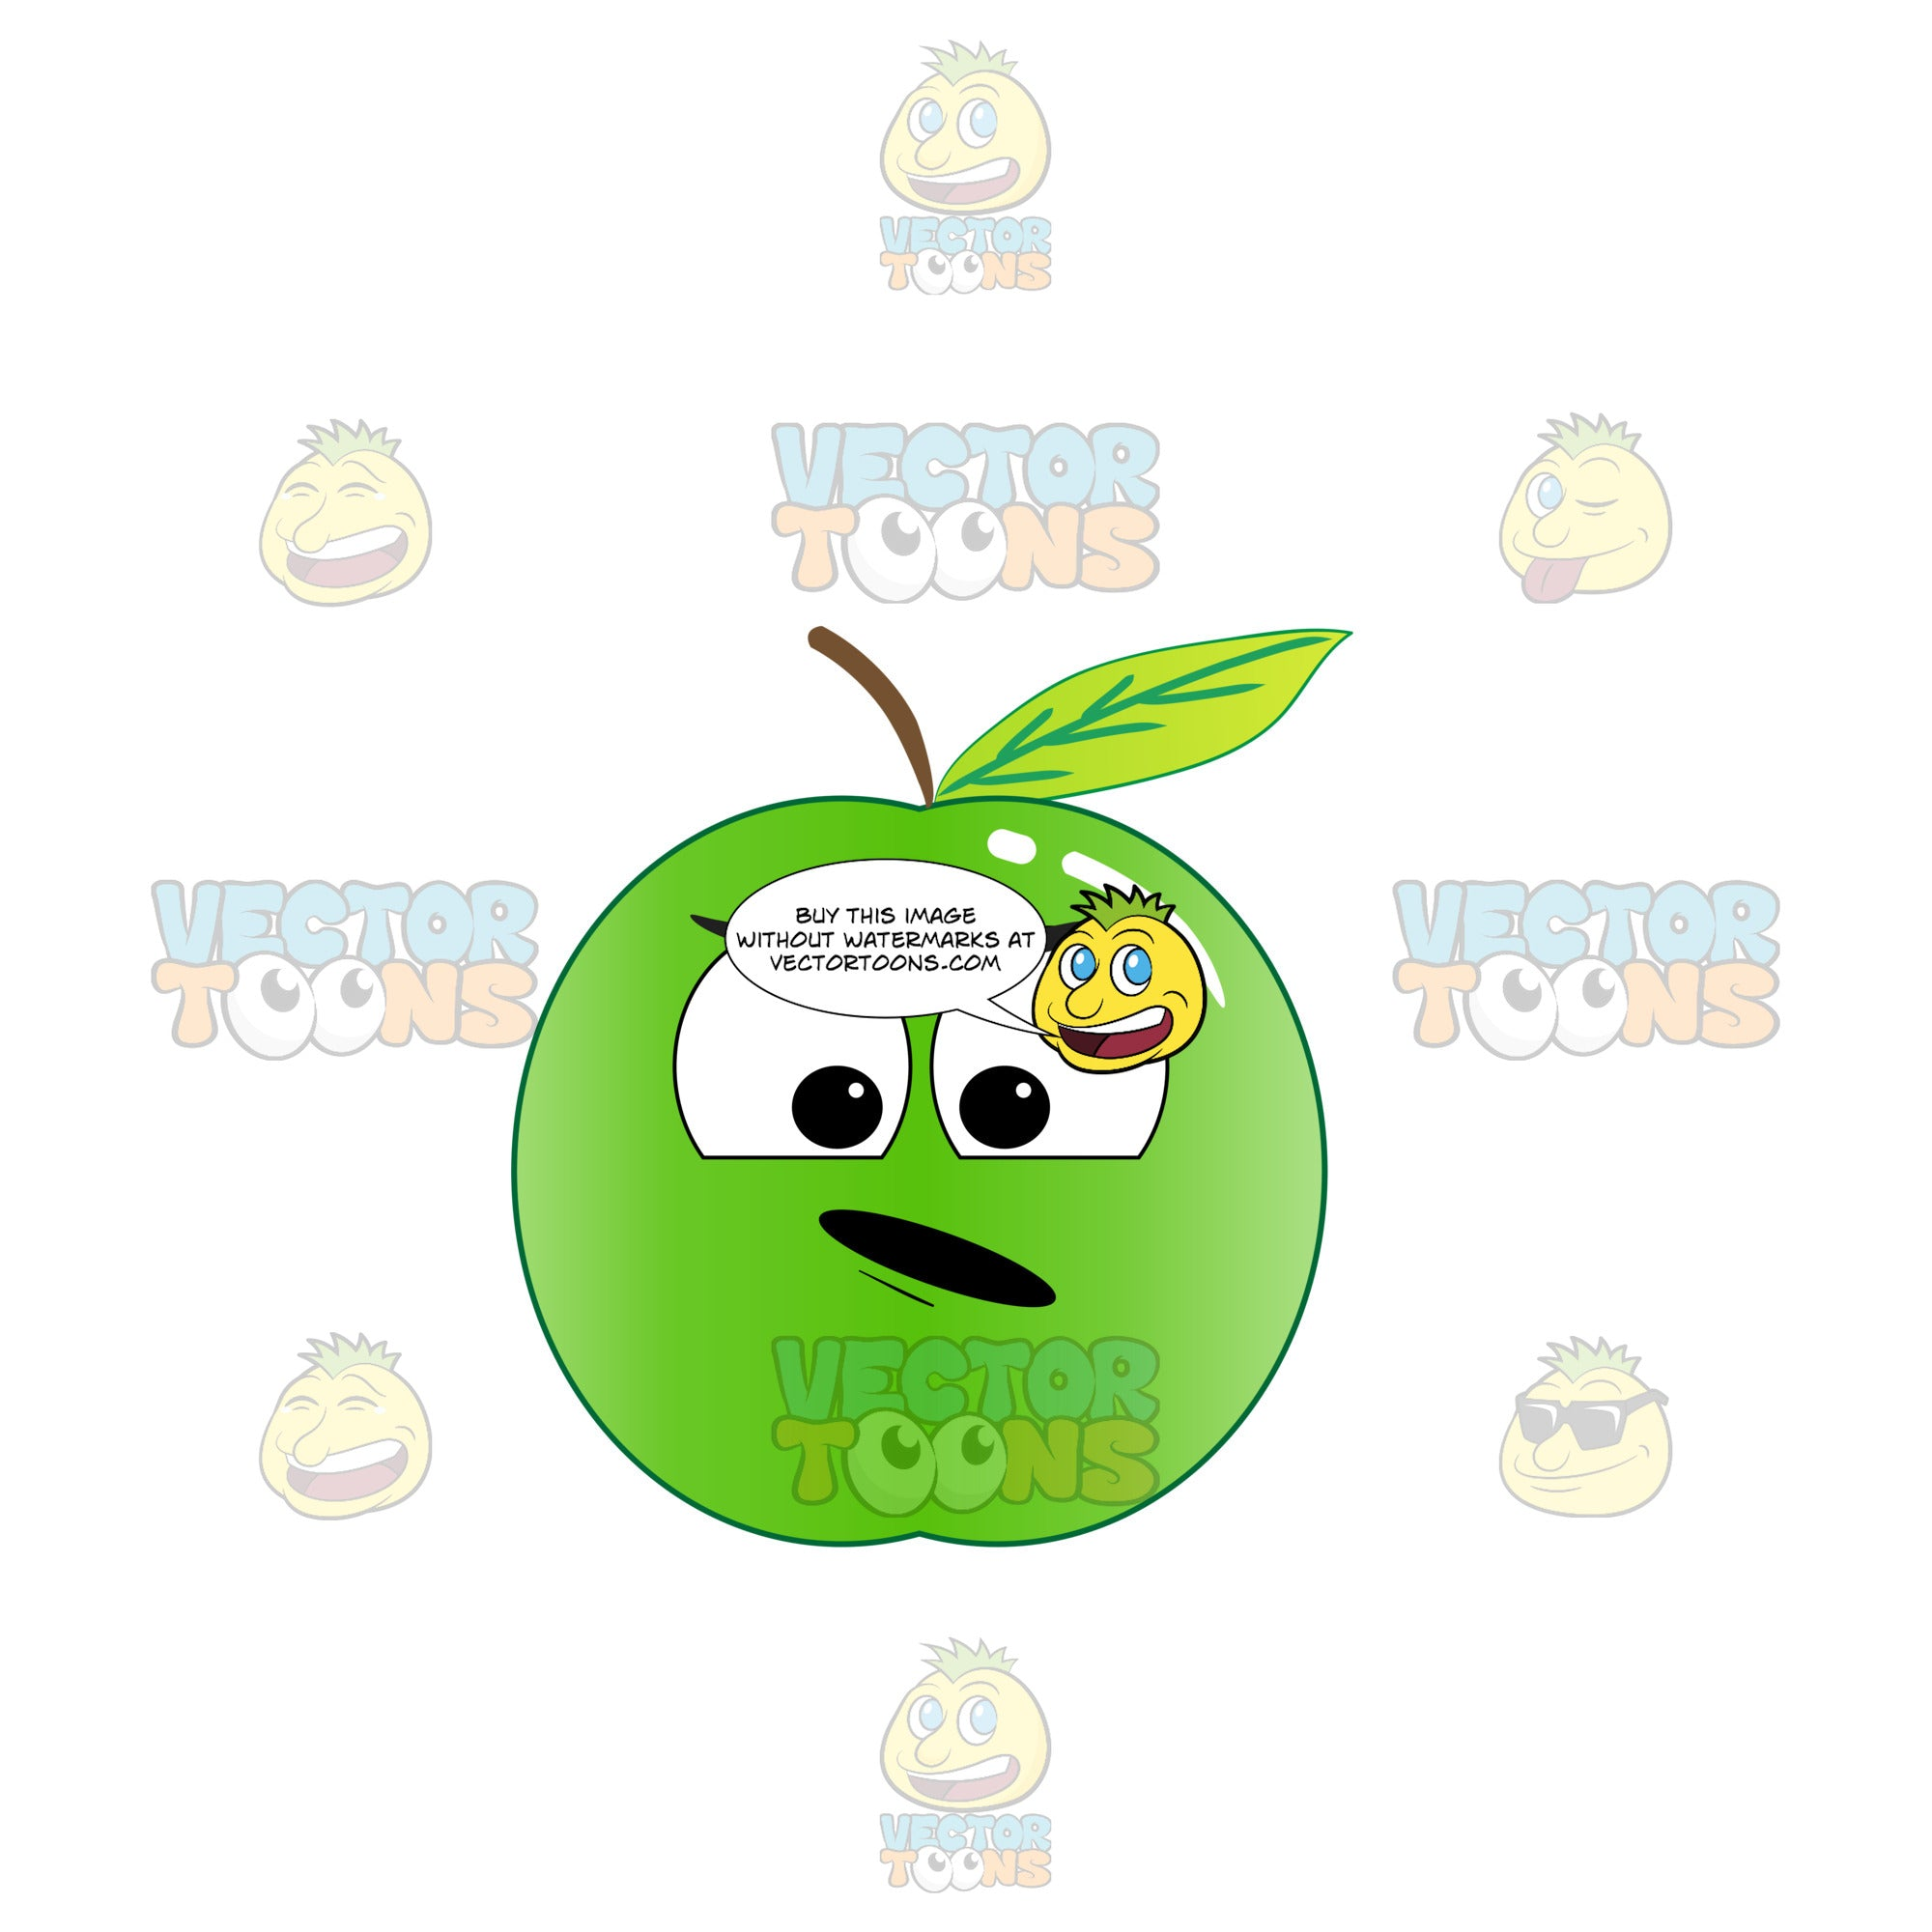 Displeased And Surprised Look On Green Apple Emoji